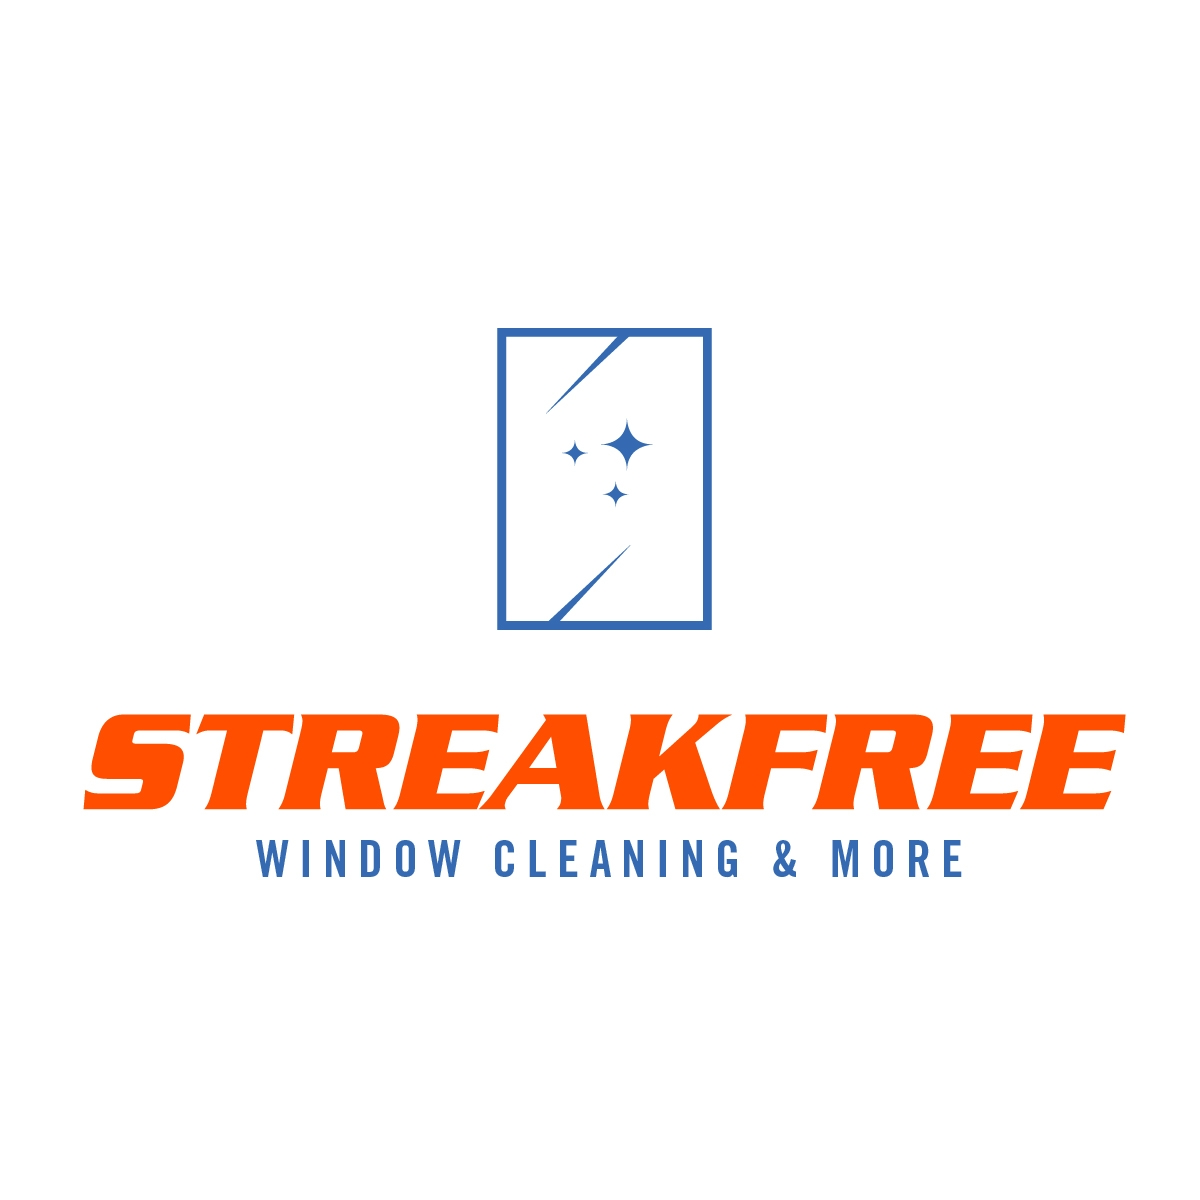 Streakfree Window Cleaning and More logo